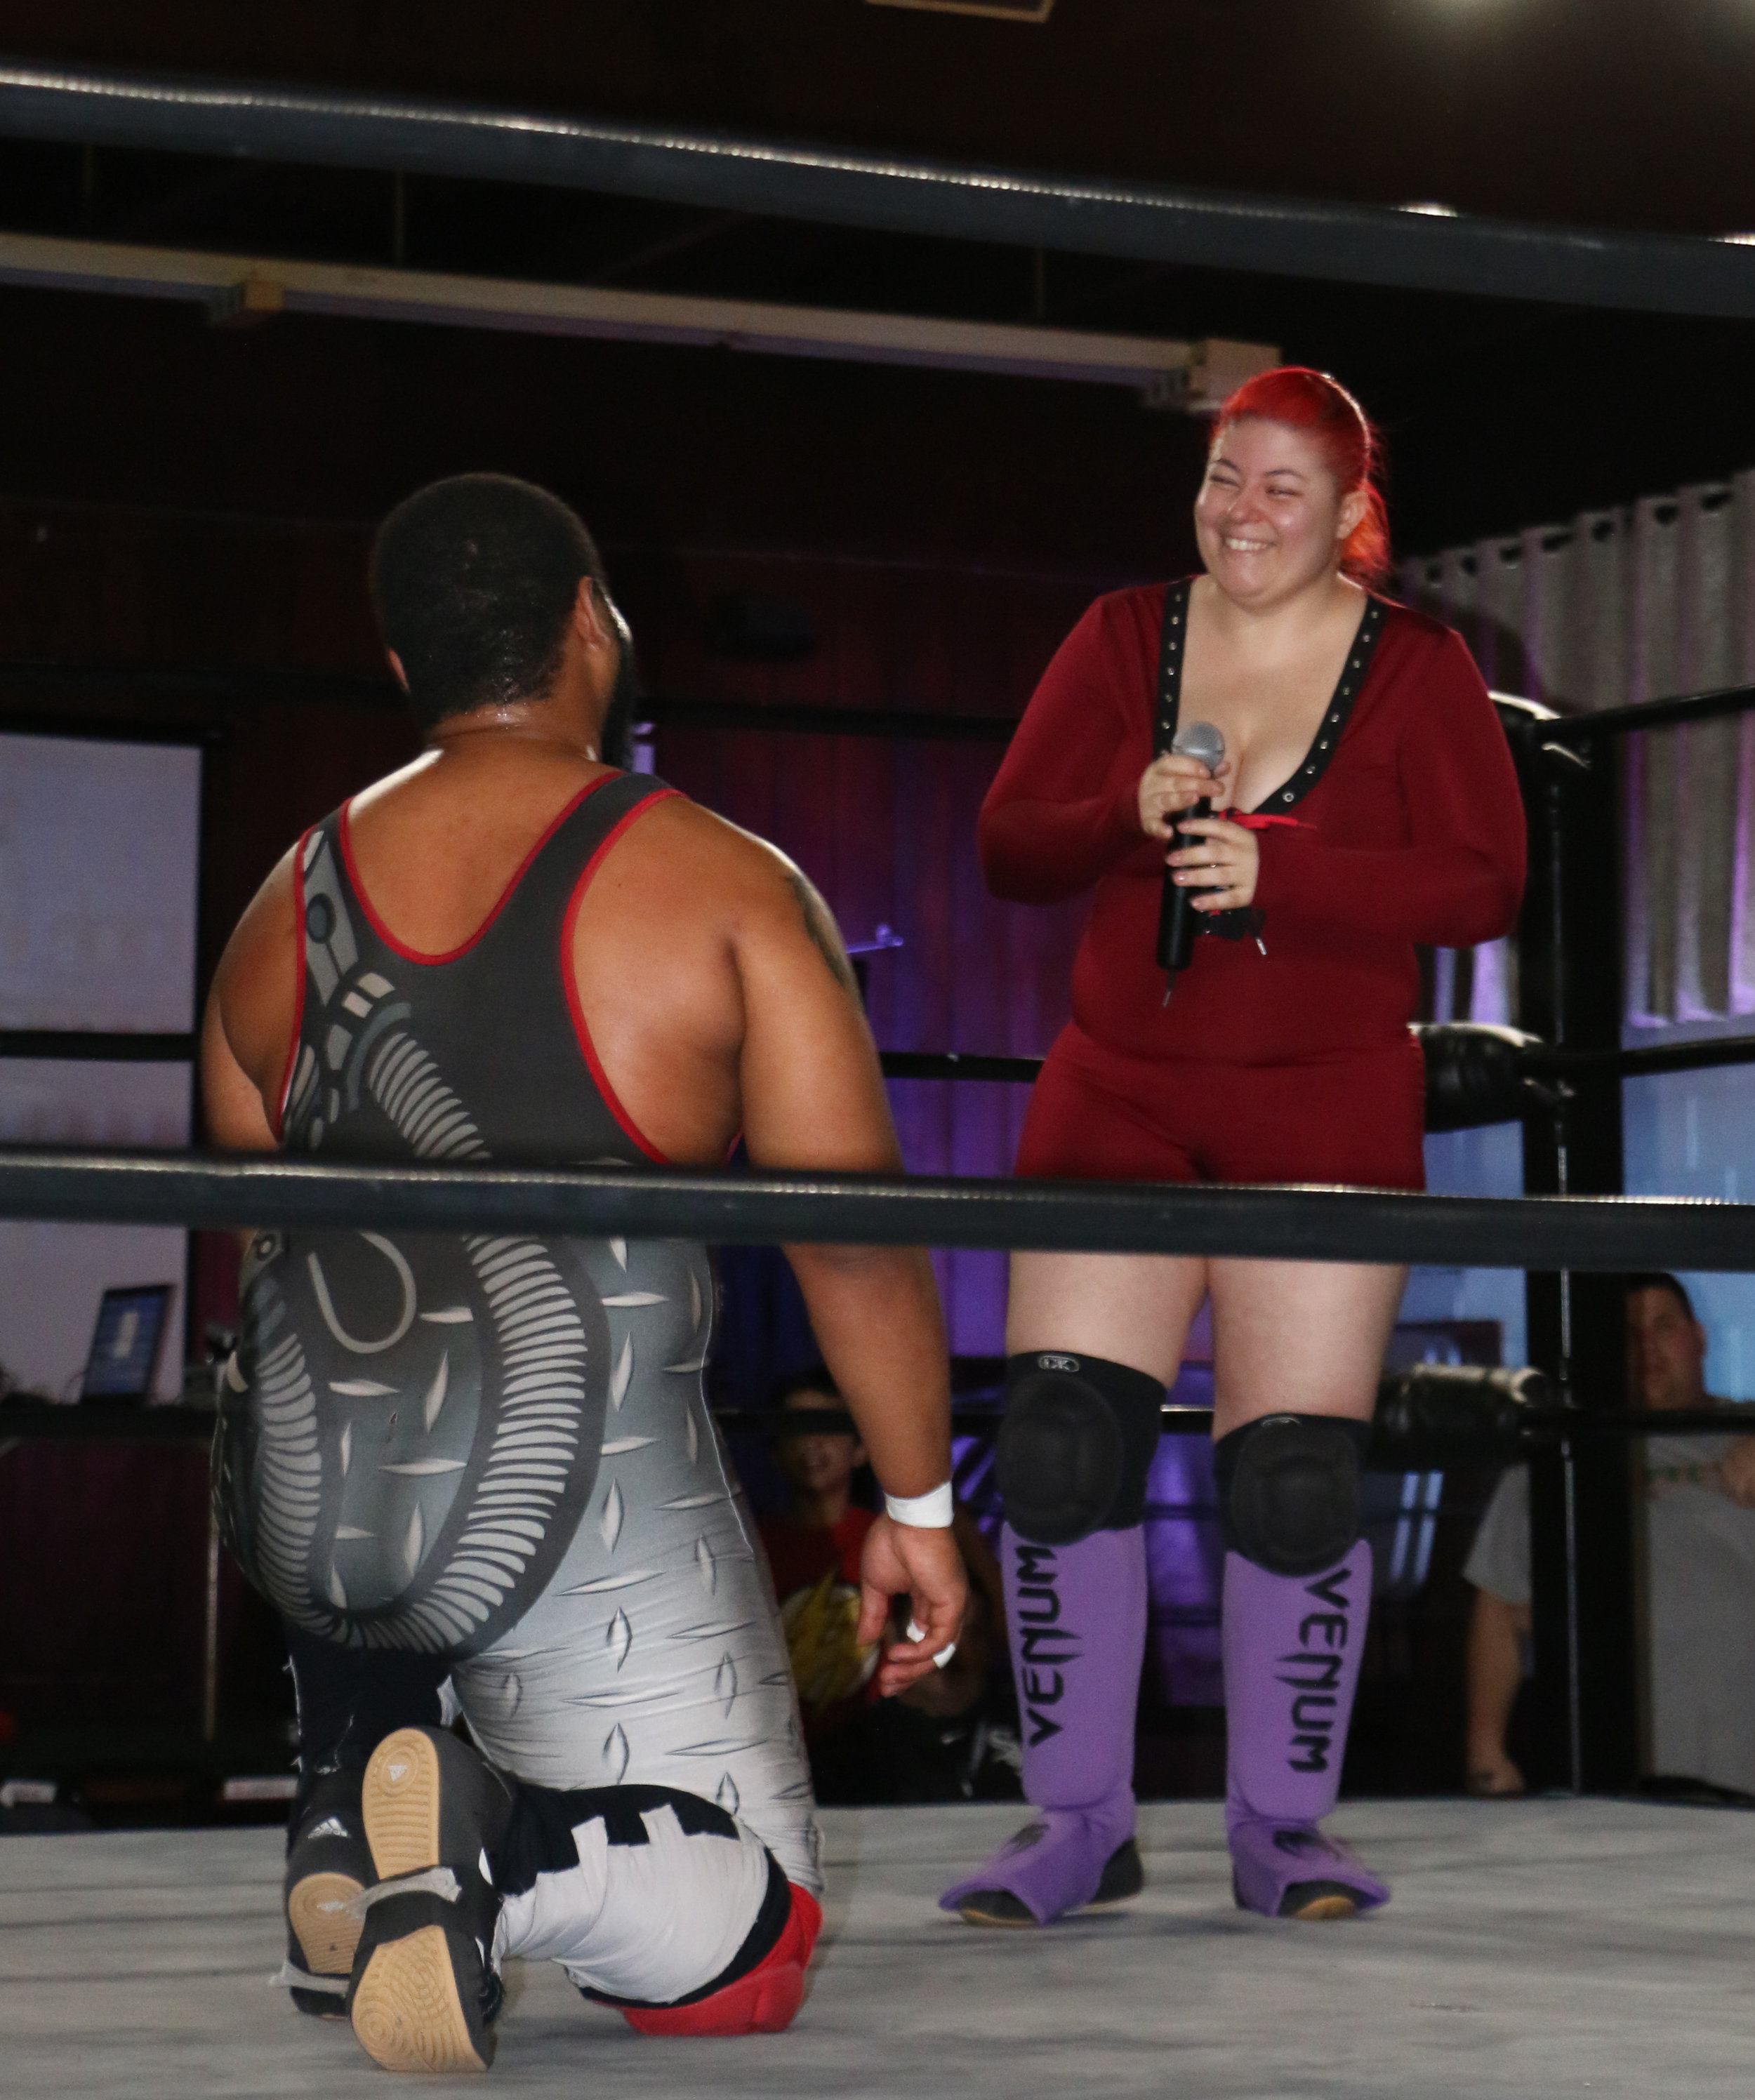 """Mike Strong of """"The Empire"""" proposes to his longtime girlfriend, Vega Venum, after his match at Berwyn Championship Wrestling's show at the Berwyn Eagles Club on Saturday, Sept. 22, 2018.  (Photo by Mike Pankow)"""